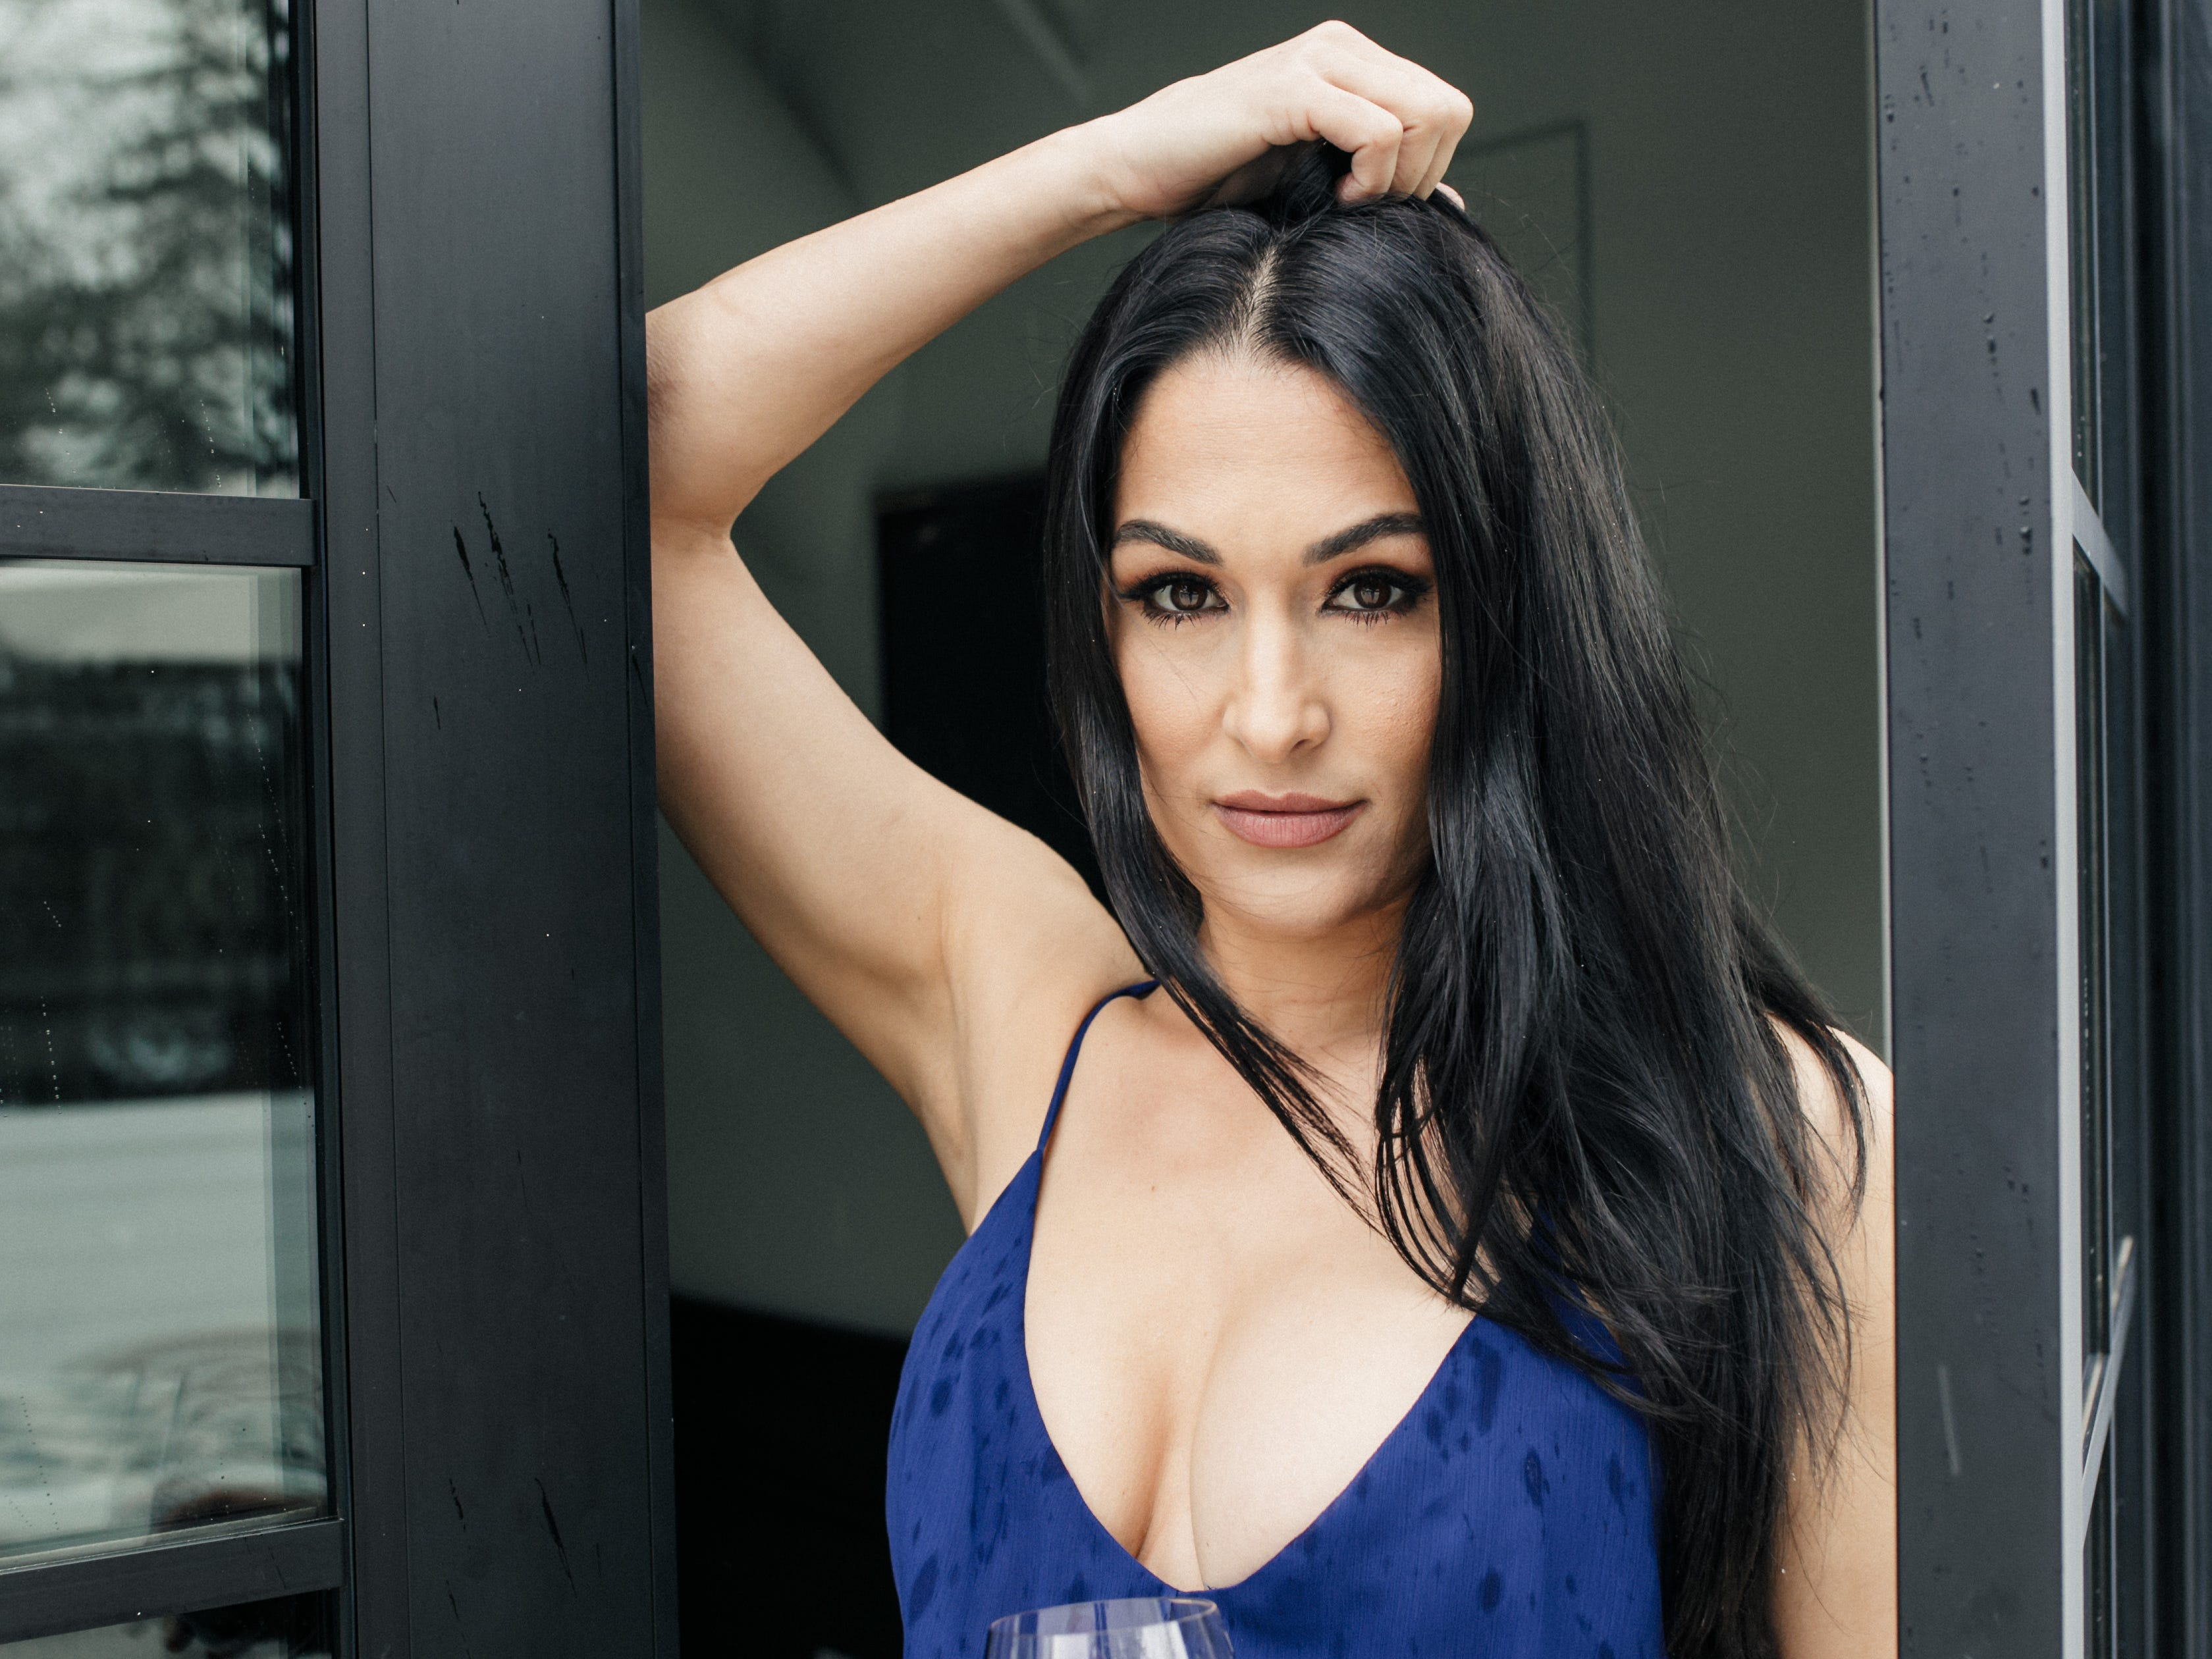 Reality television and WWE stars Brie and Nikki Bella, also known as The Bella Twins, will appear with their Belle Radici wine brand on the 2019 USA TODAY Wine & Food Experience tour.